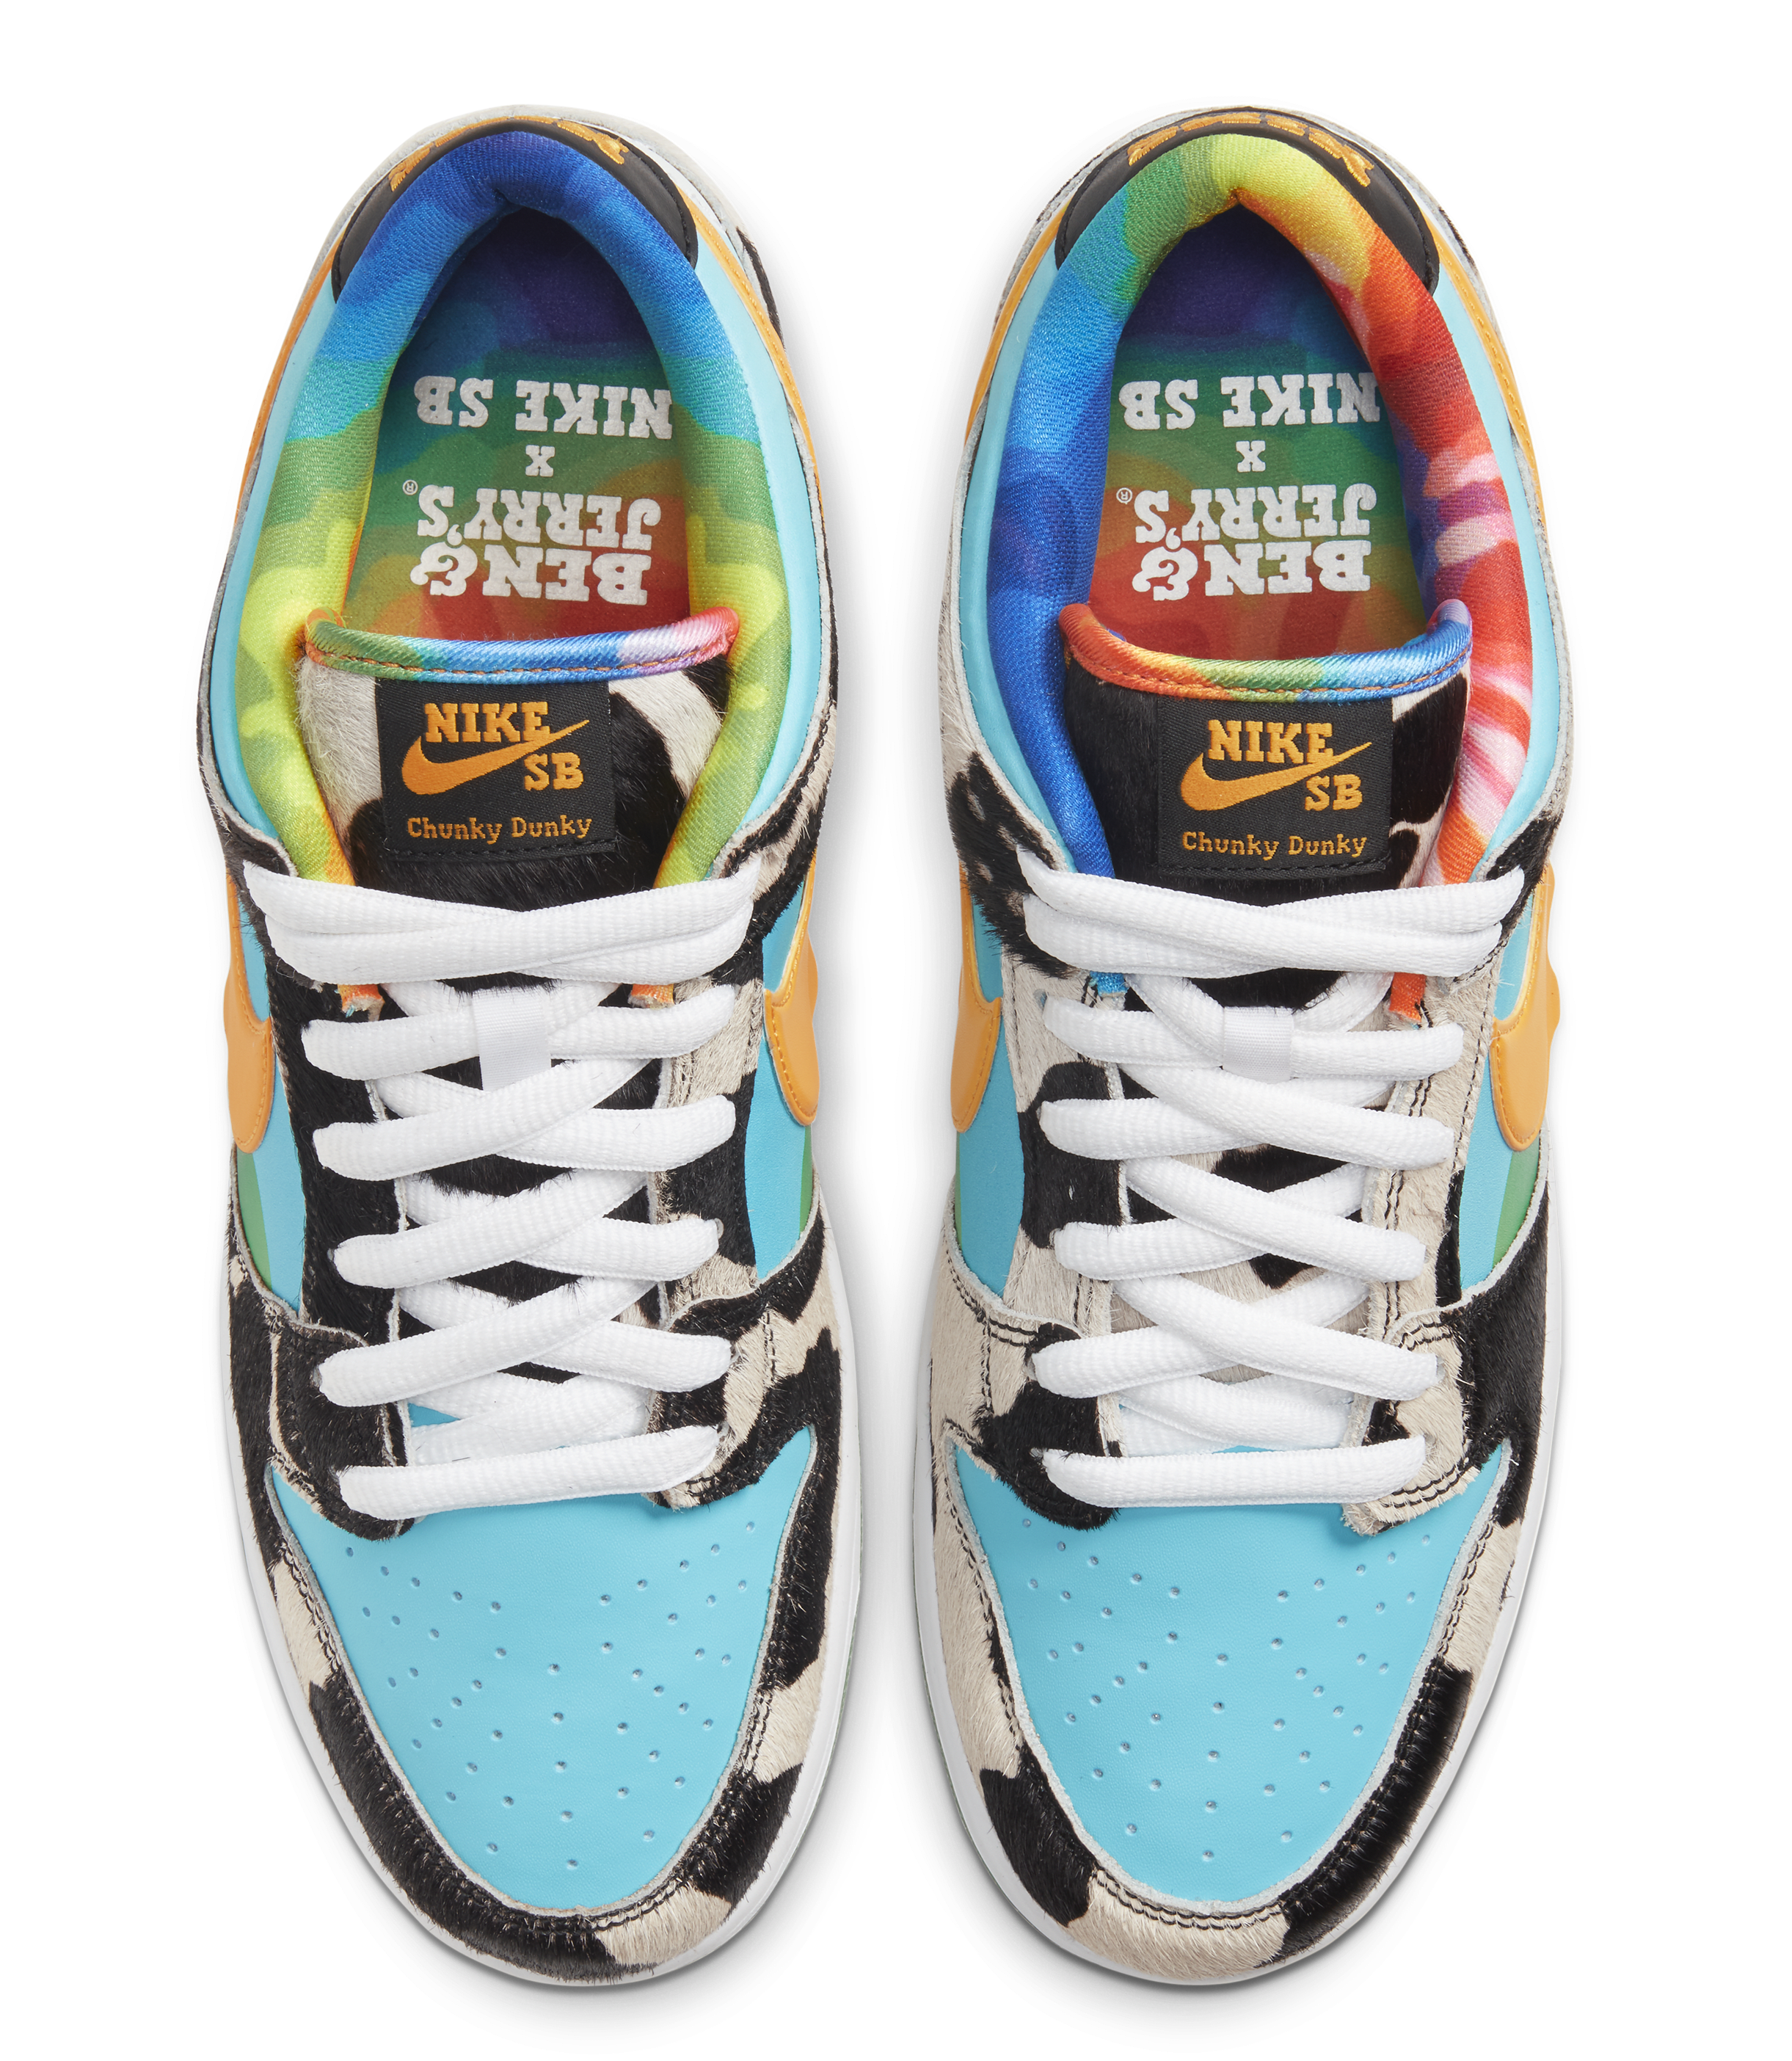 Ben and Jerry's x Nike SB Dunk Low 'Chunky Dunky' CU3244-100 (Top)